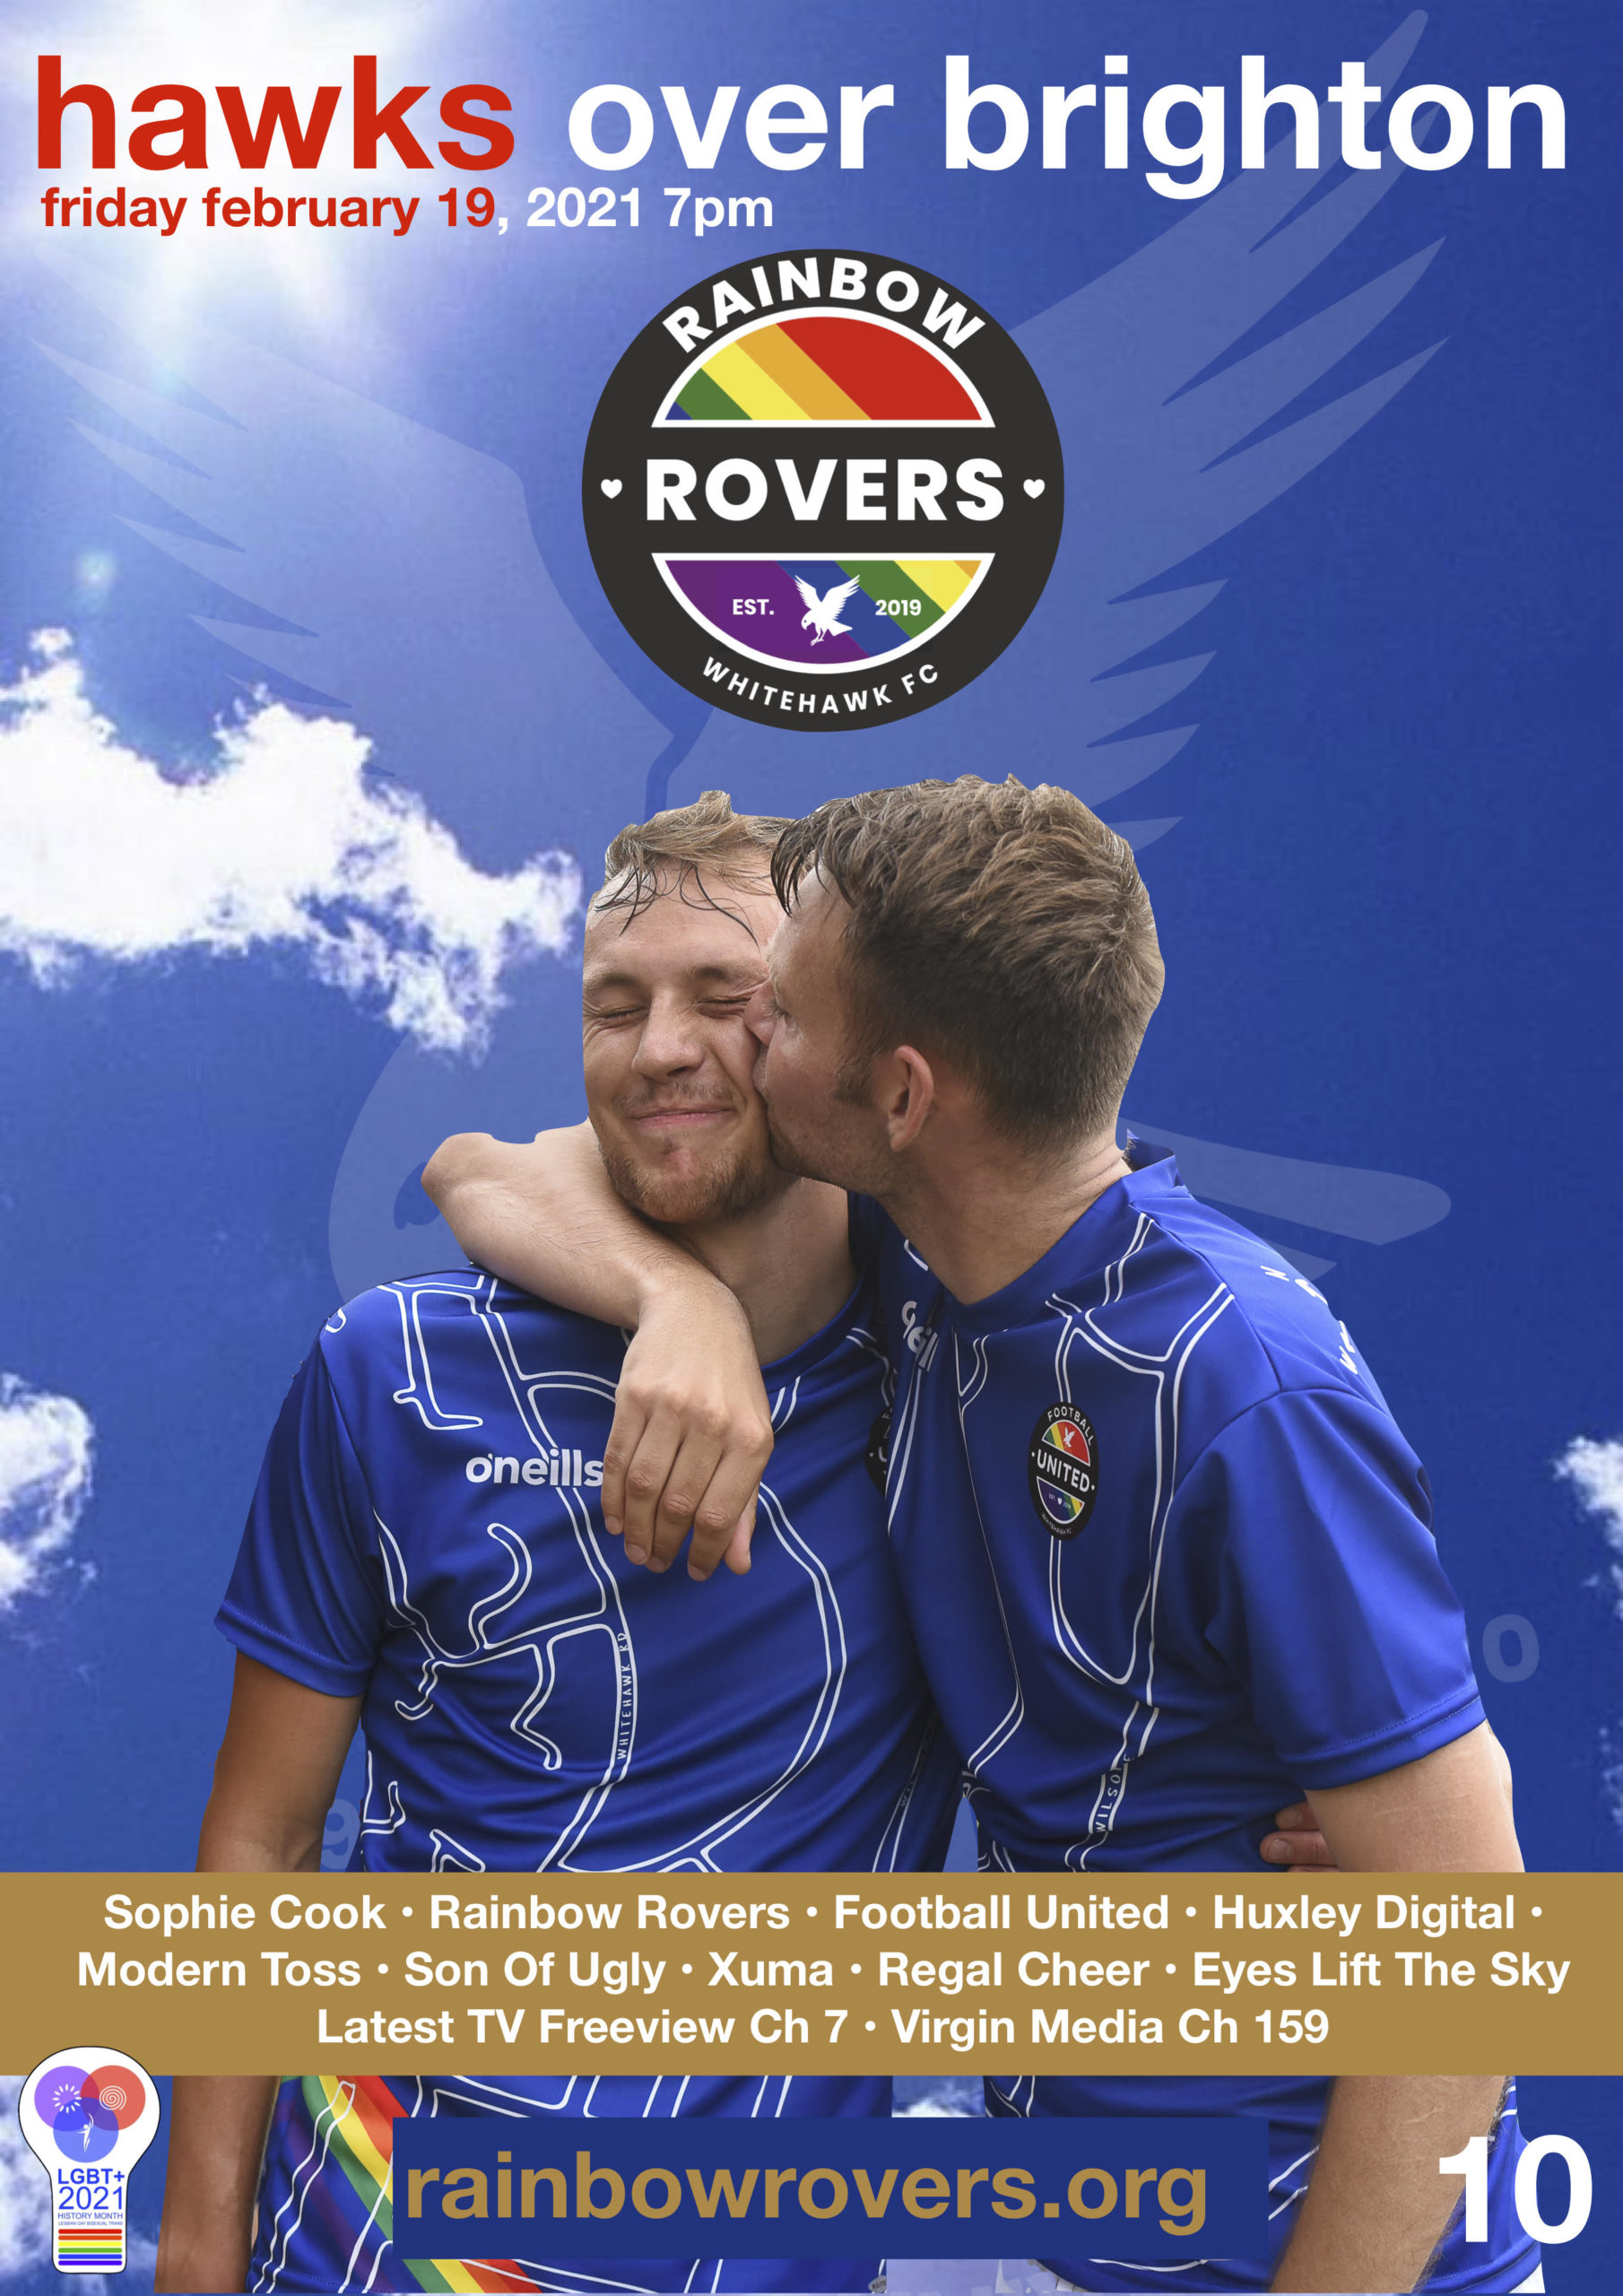 Hawks Over Brighton poster showing two members of the Rainbow Rovers football club